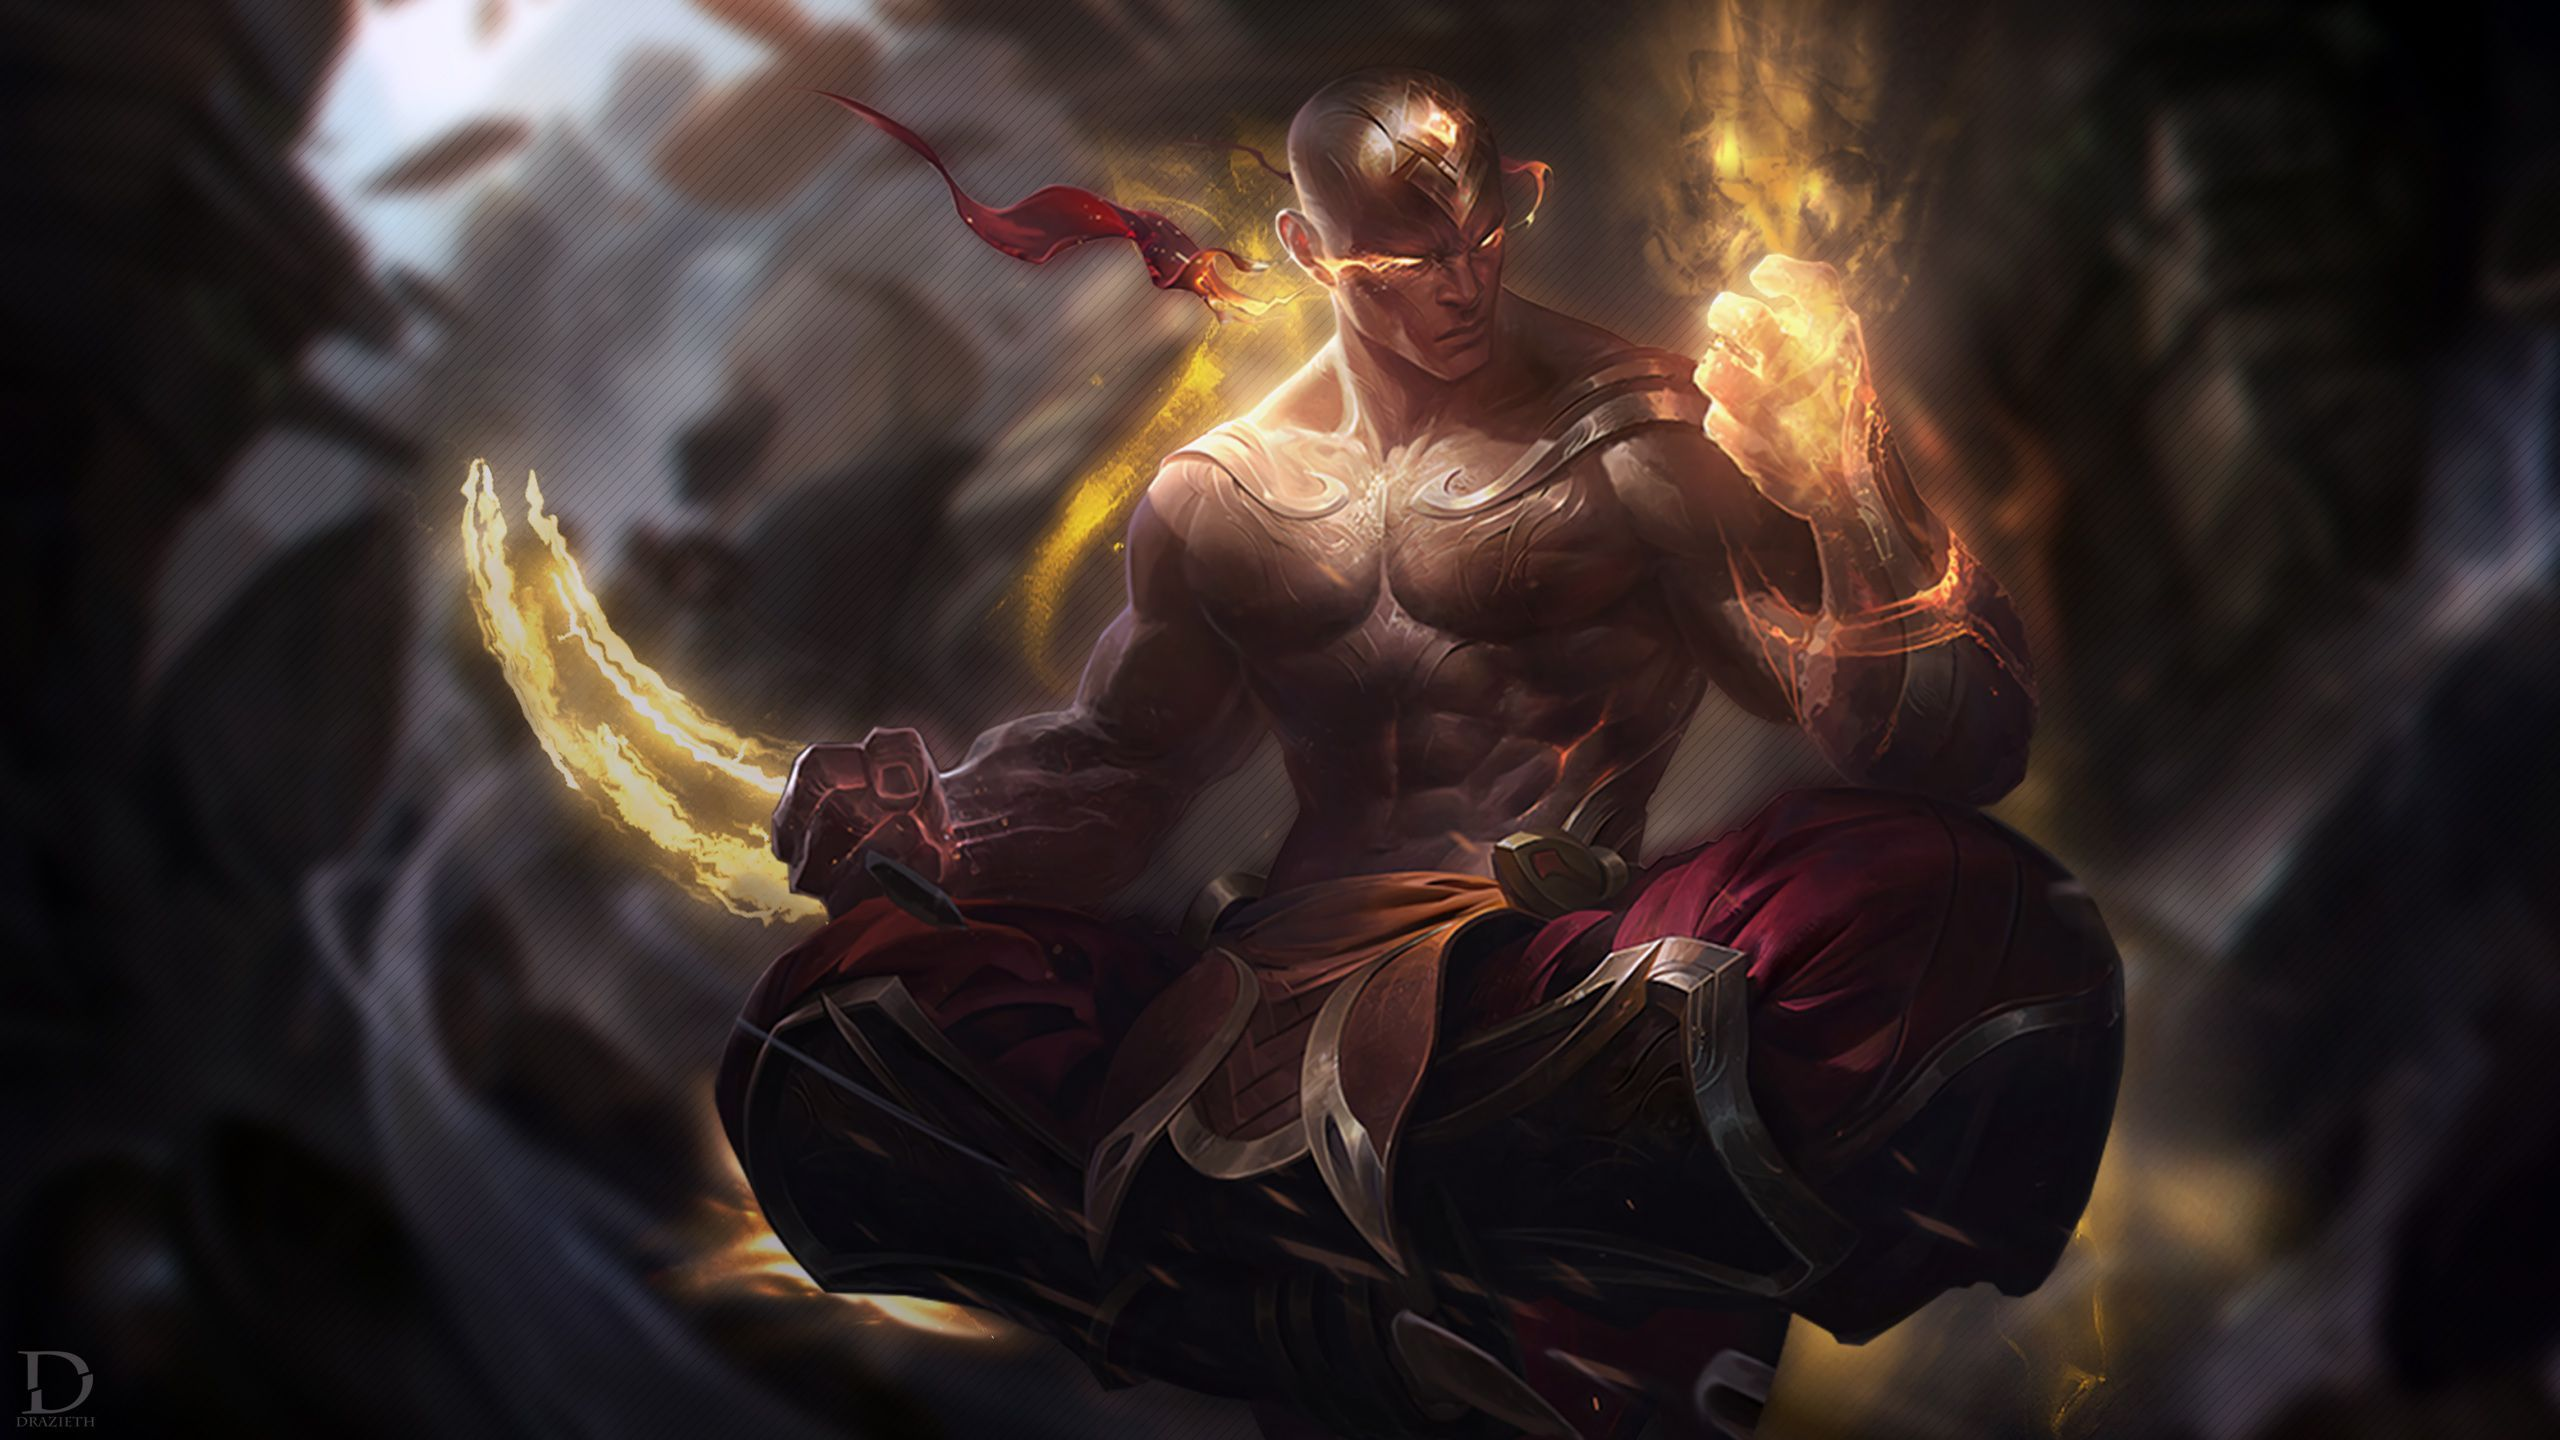 Lee Sin League Of Legends Wallpaper 4k In 2020 League Of Legends Lol League Of Legends Legend